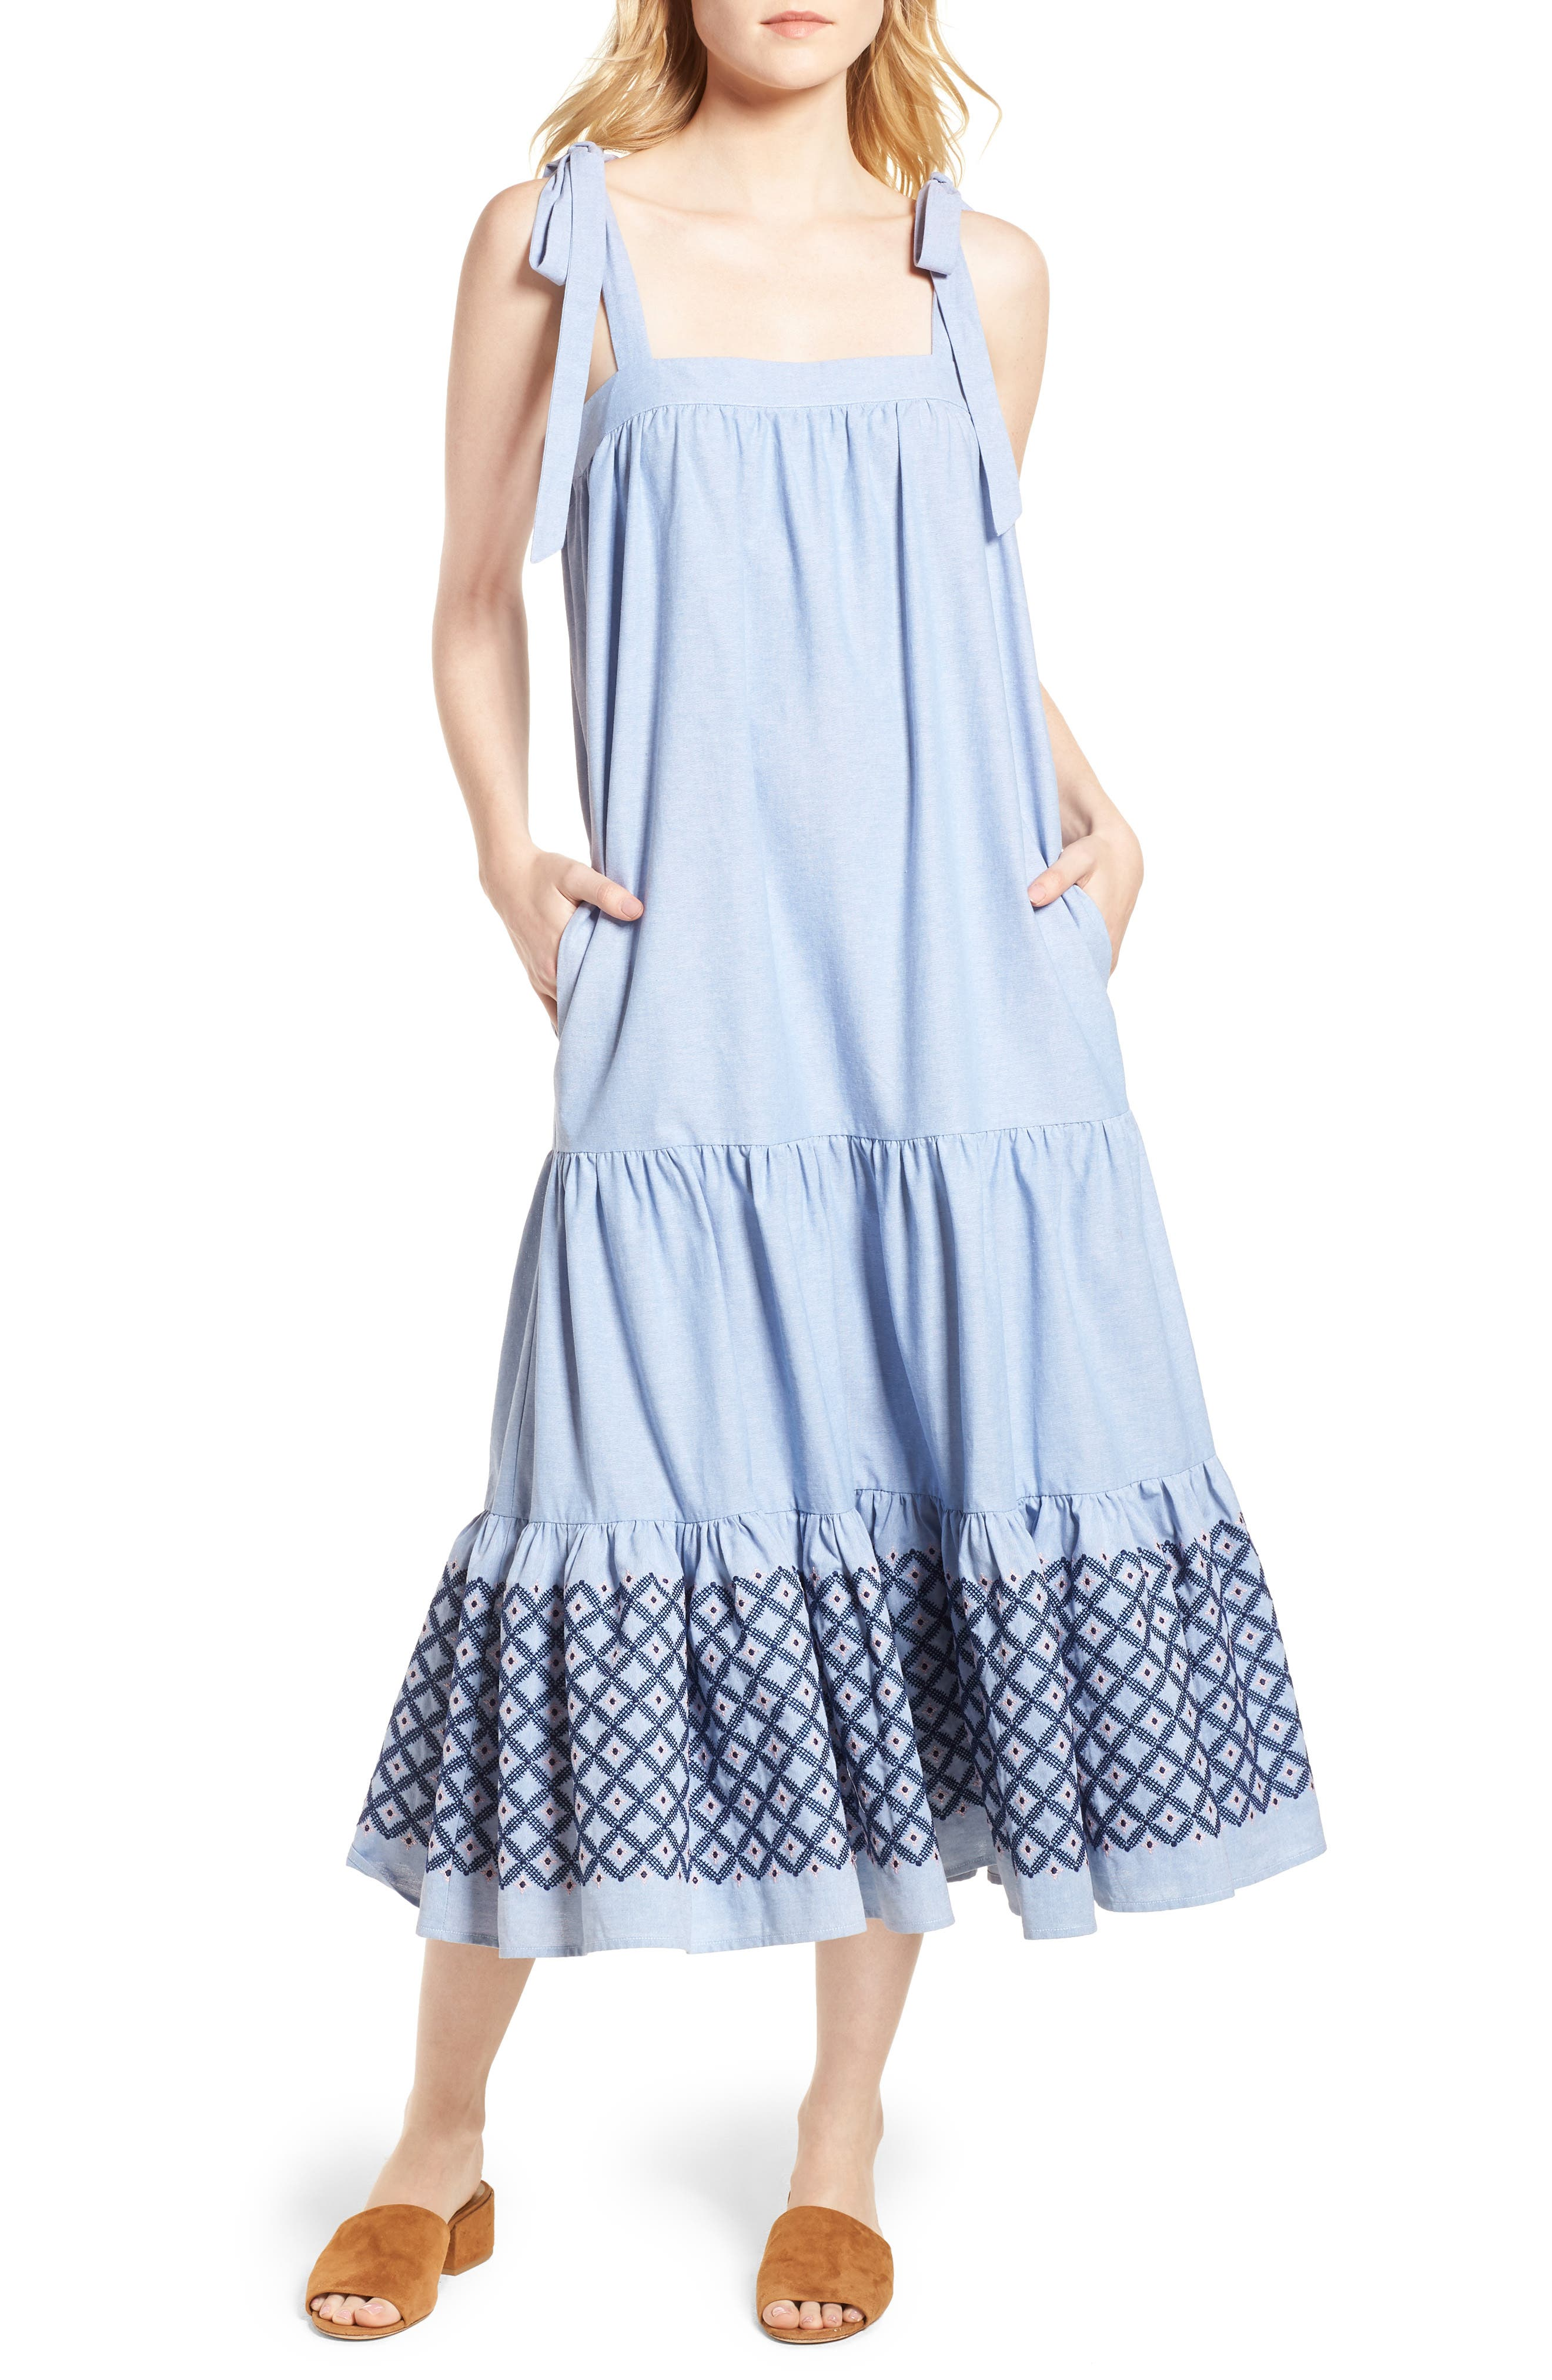 Lucy Dress,                             Main thumbnail 1, color,                             400